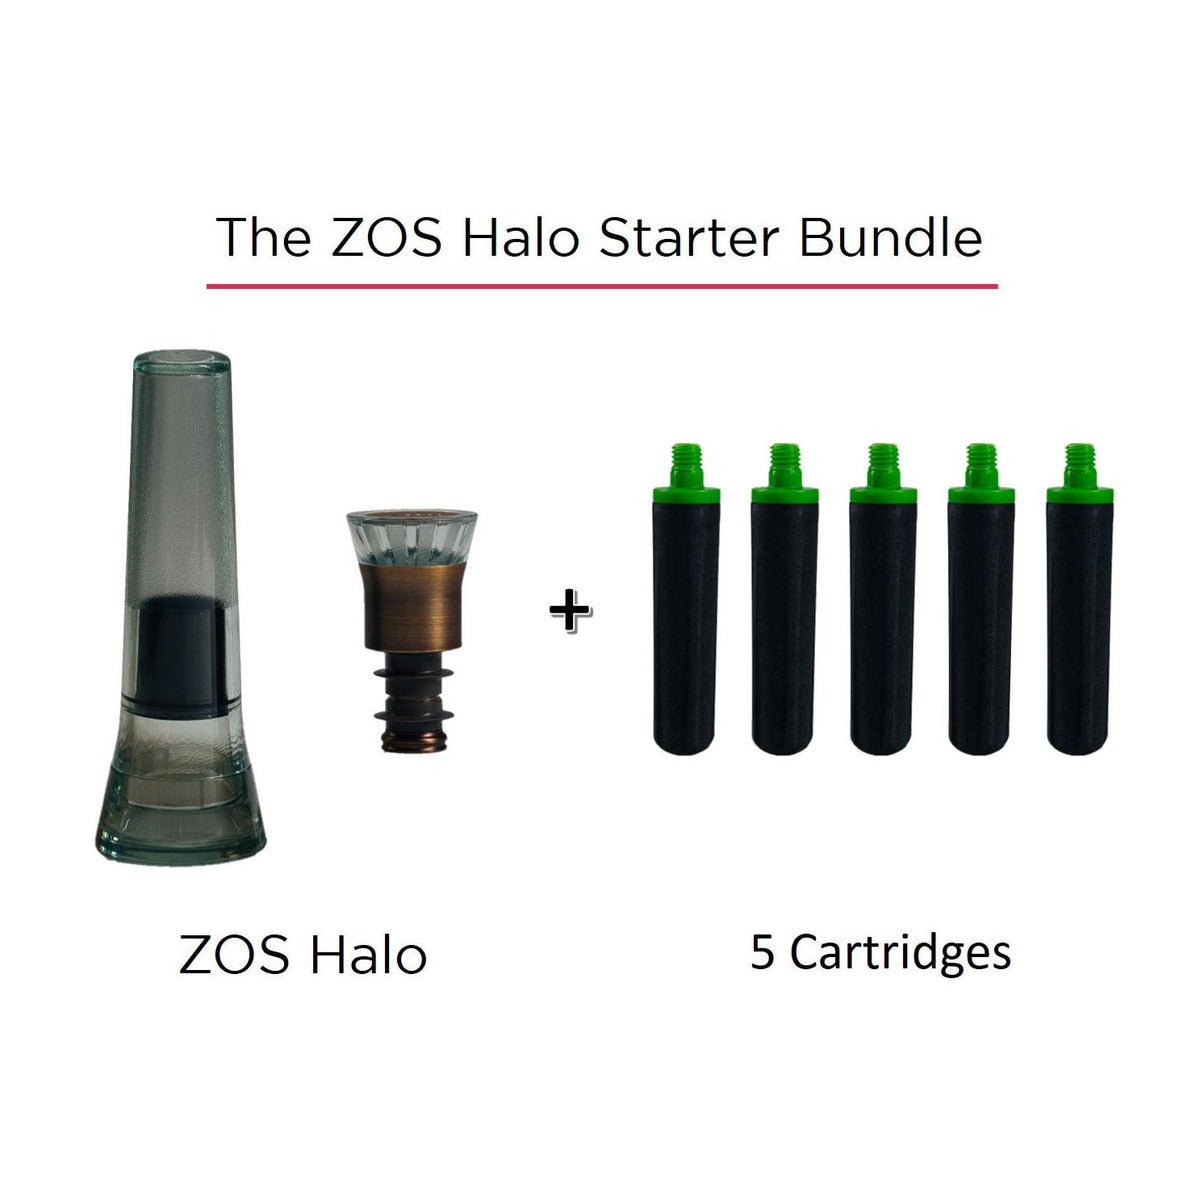 ZOS Halo Starter Bundle